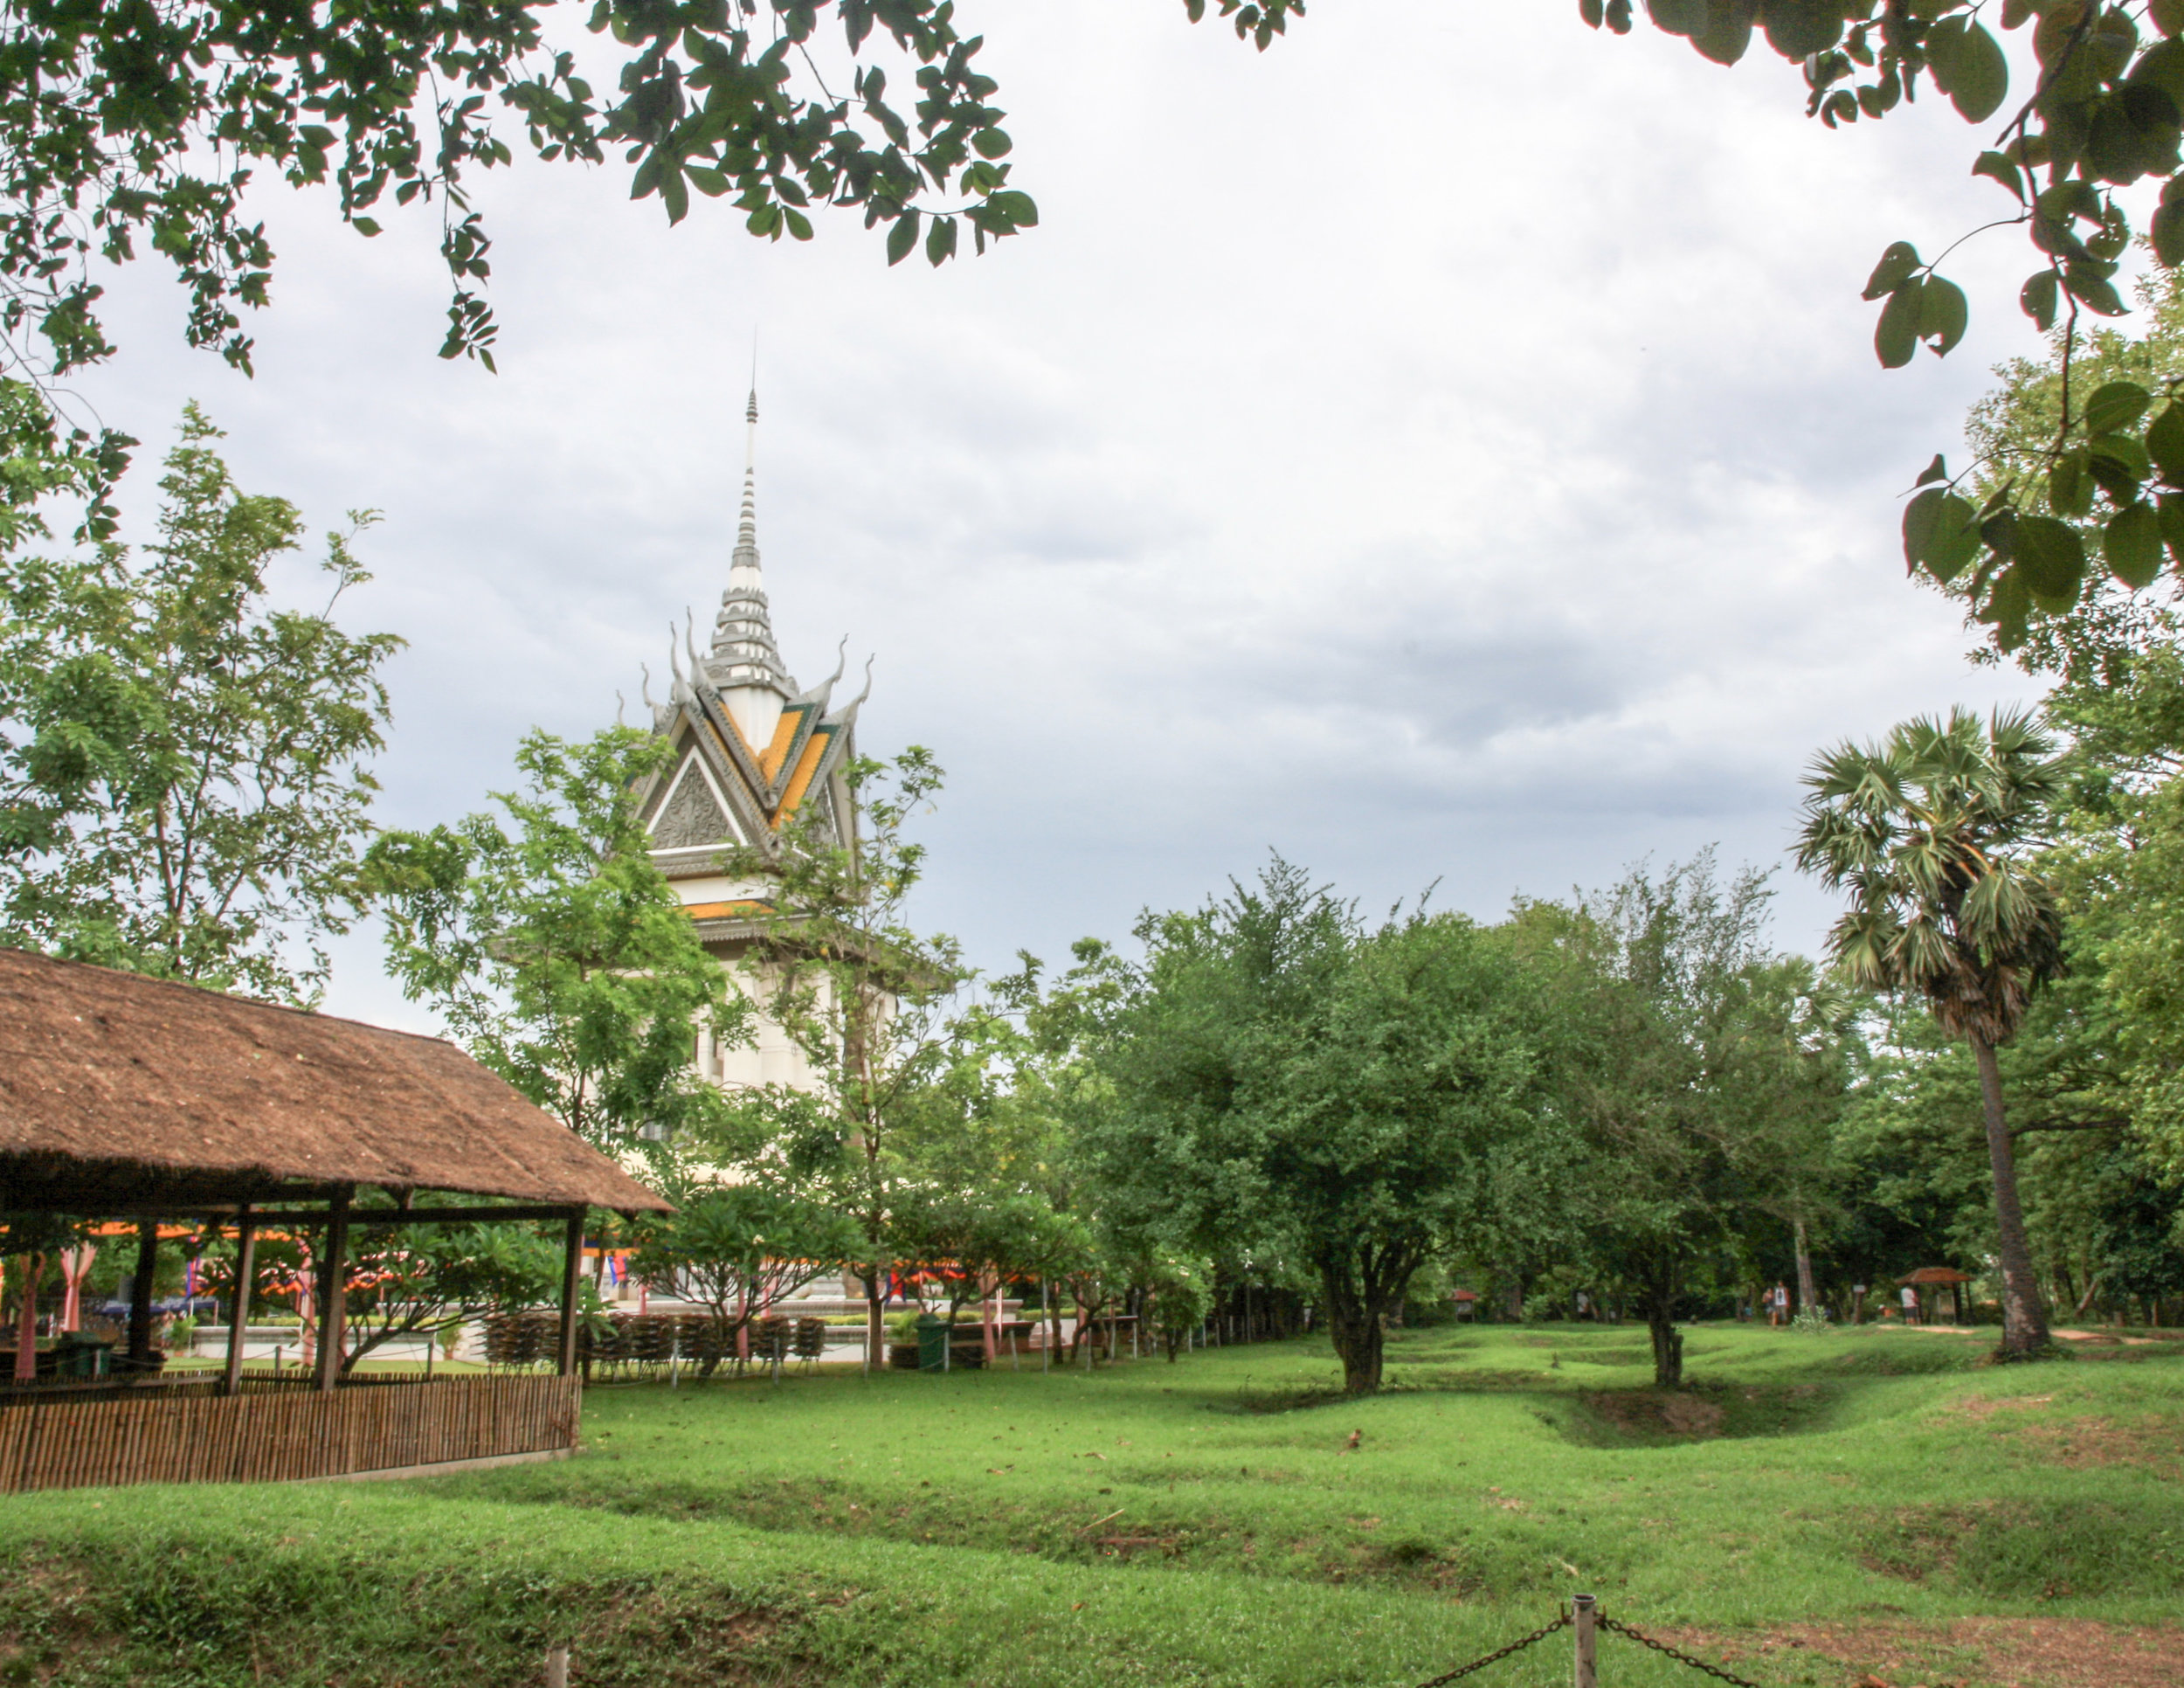 Cambodia itinerary for 2 weeks: The Killing Fields